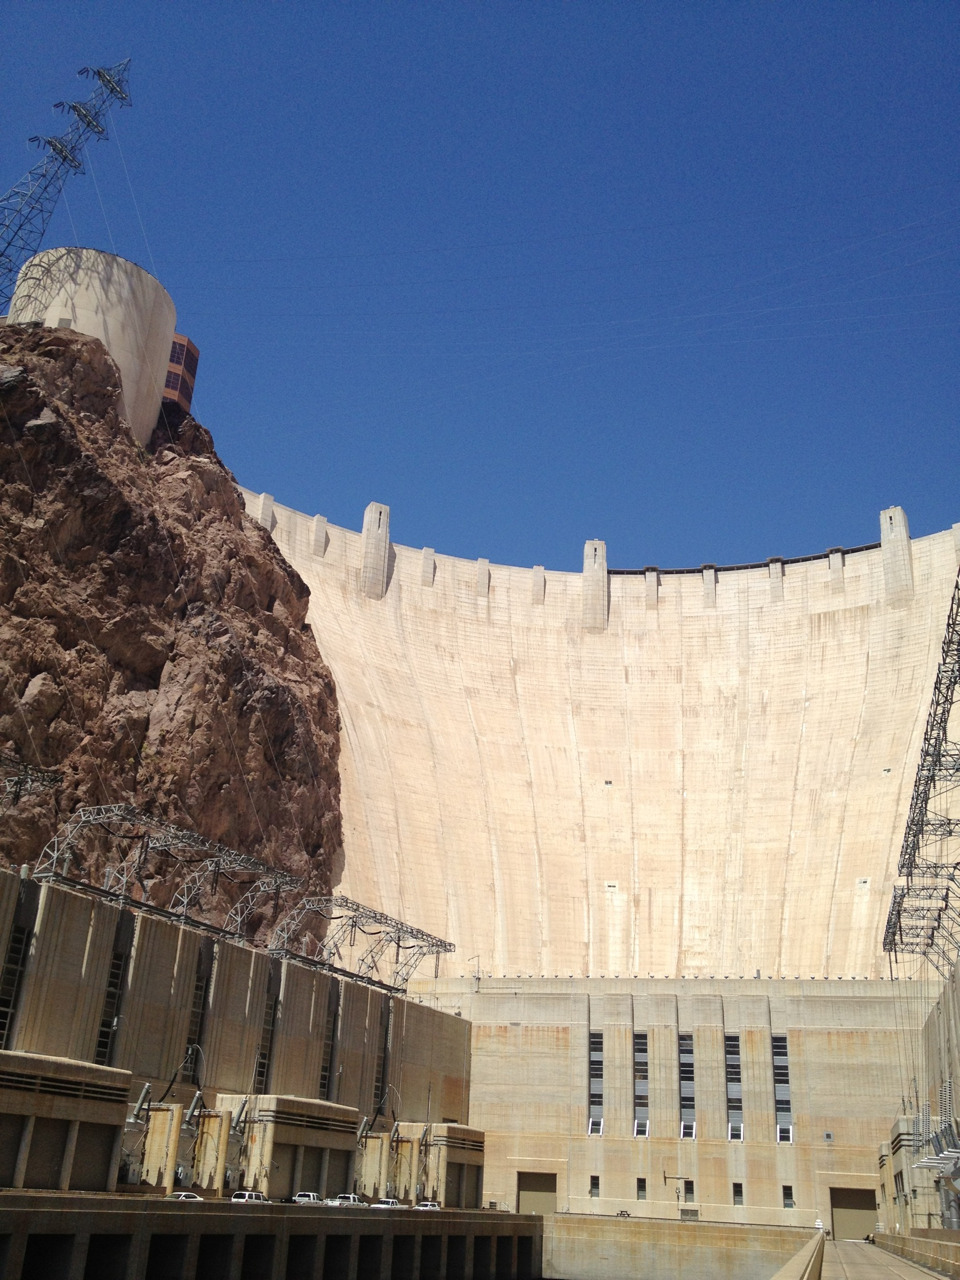 #deep #down in the ##hoover dam #water #nevada #arizona #